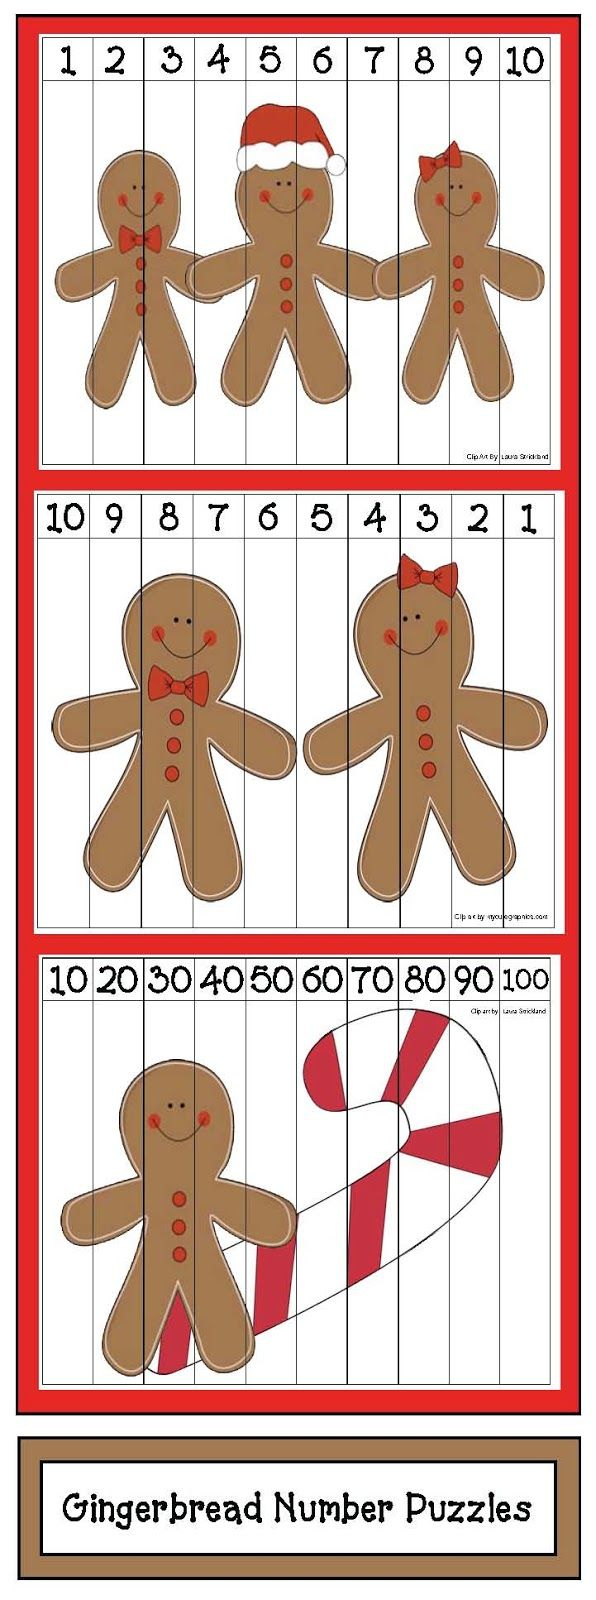 Classroom Freebies: Gingerbread Number Puzzles